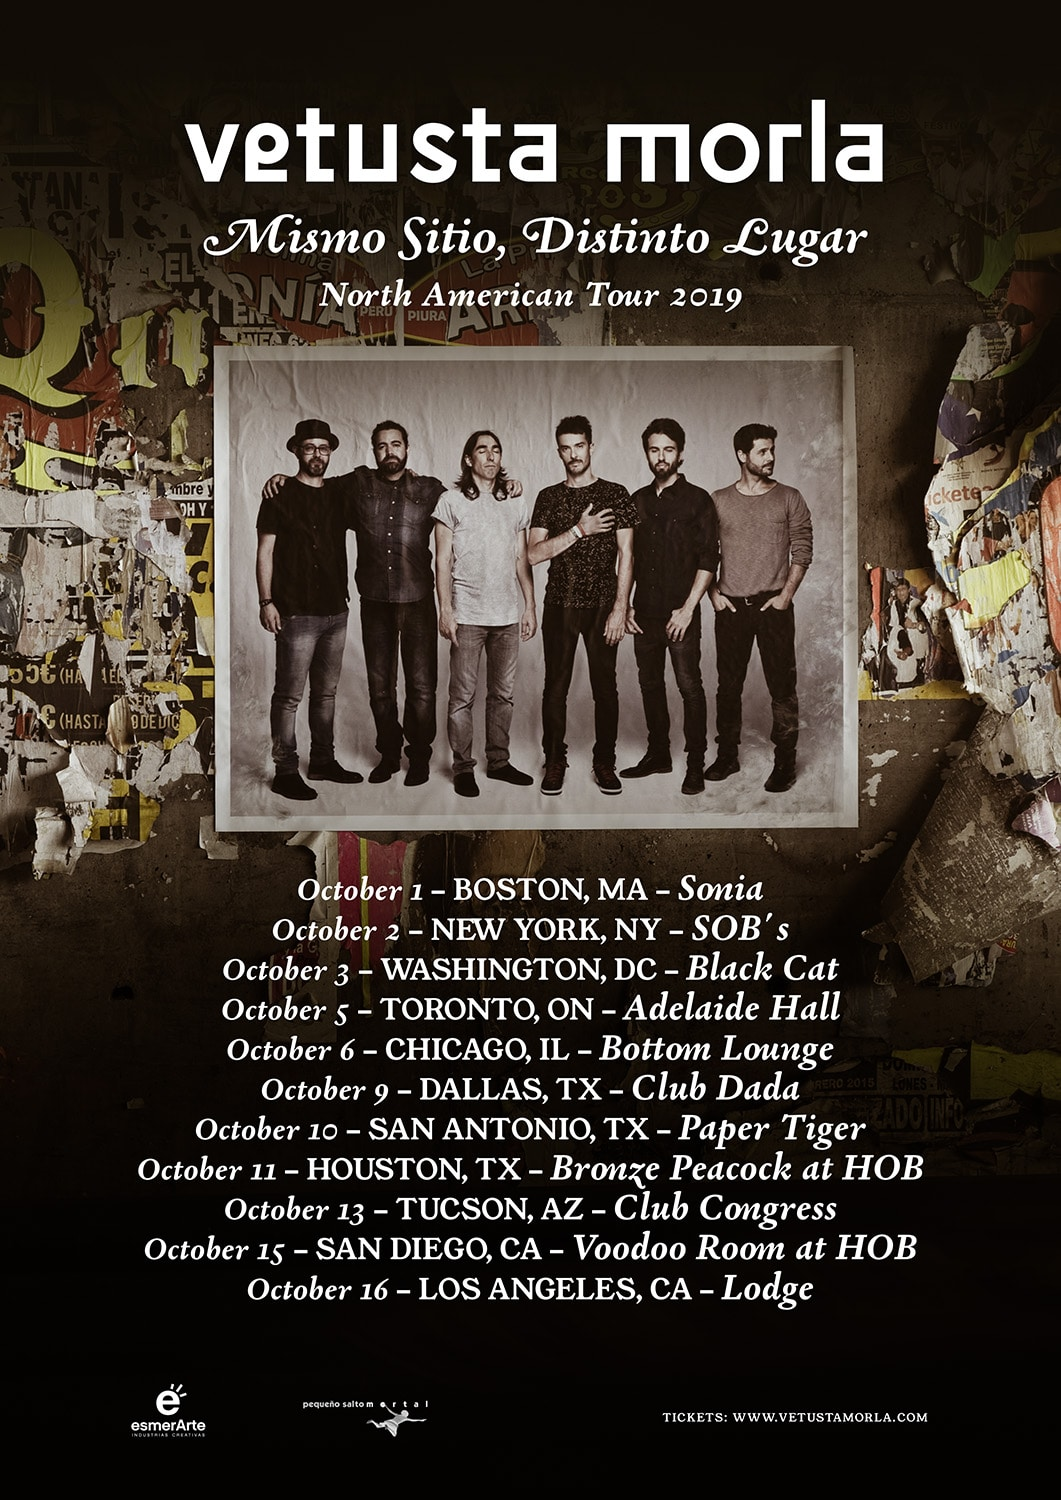 Vetusta Morla North American Tour 2019